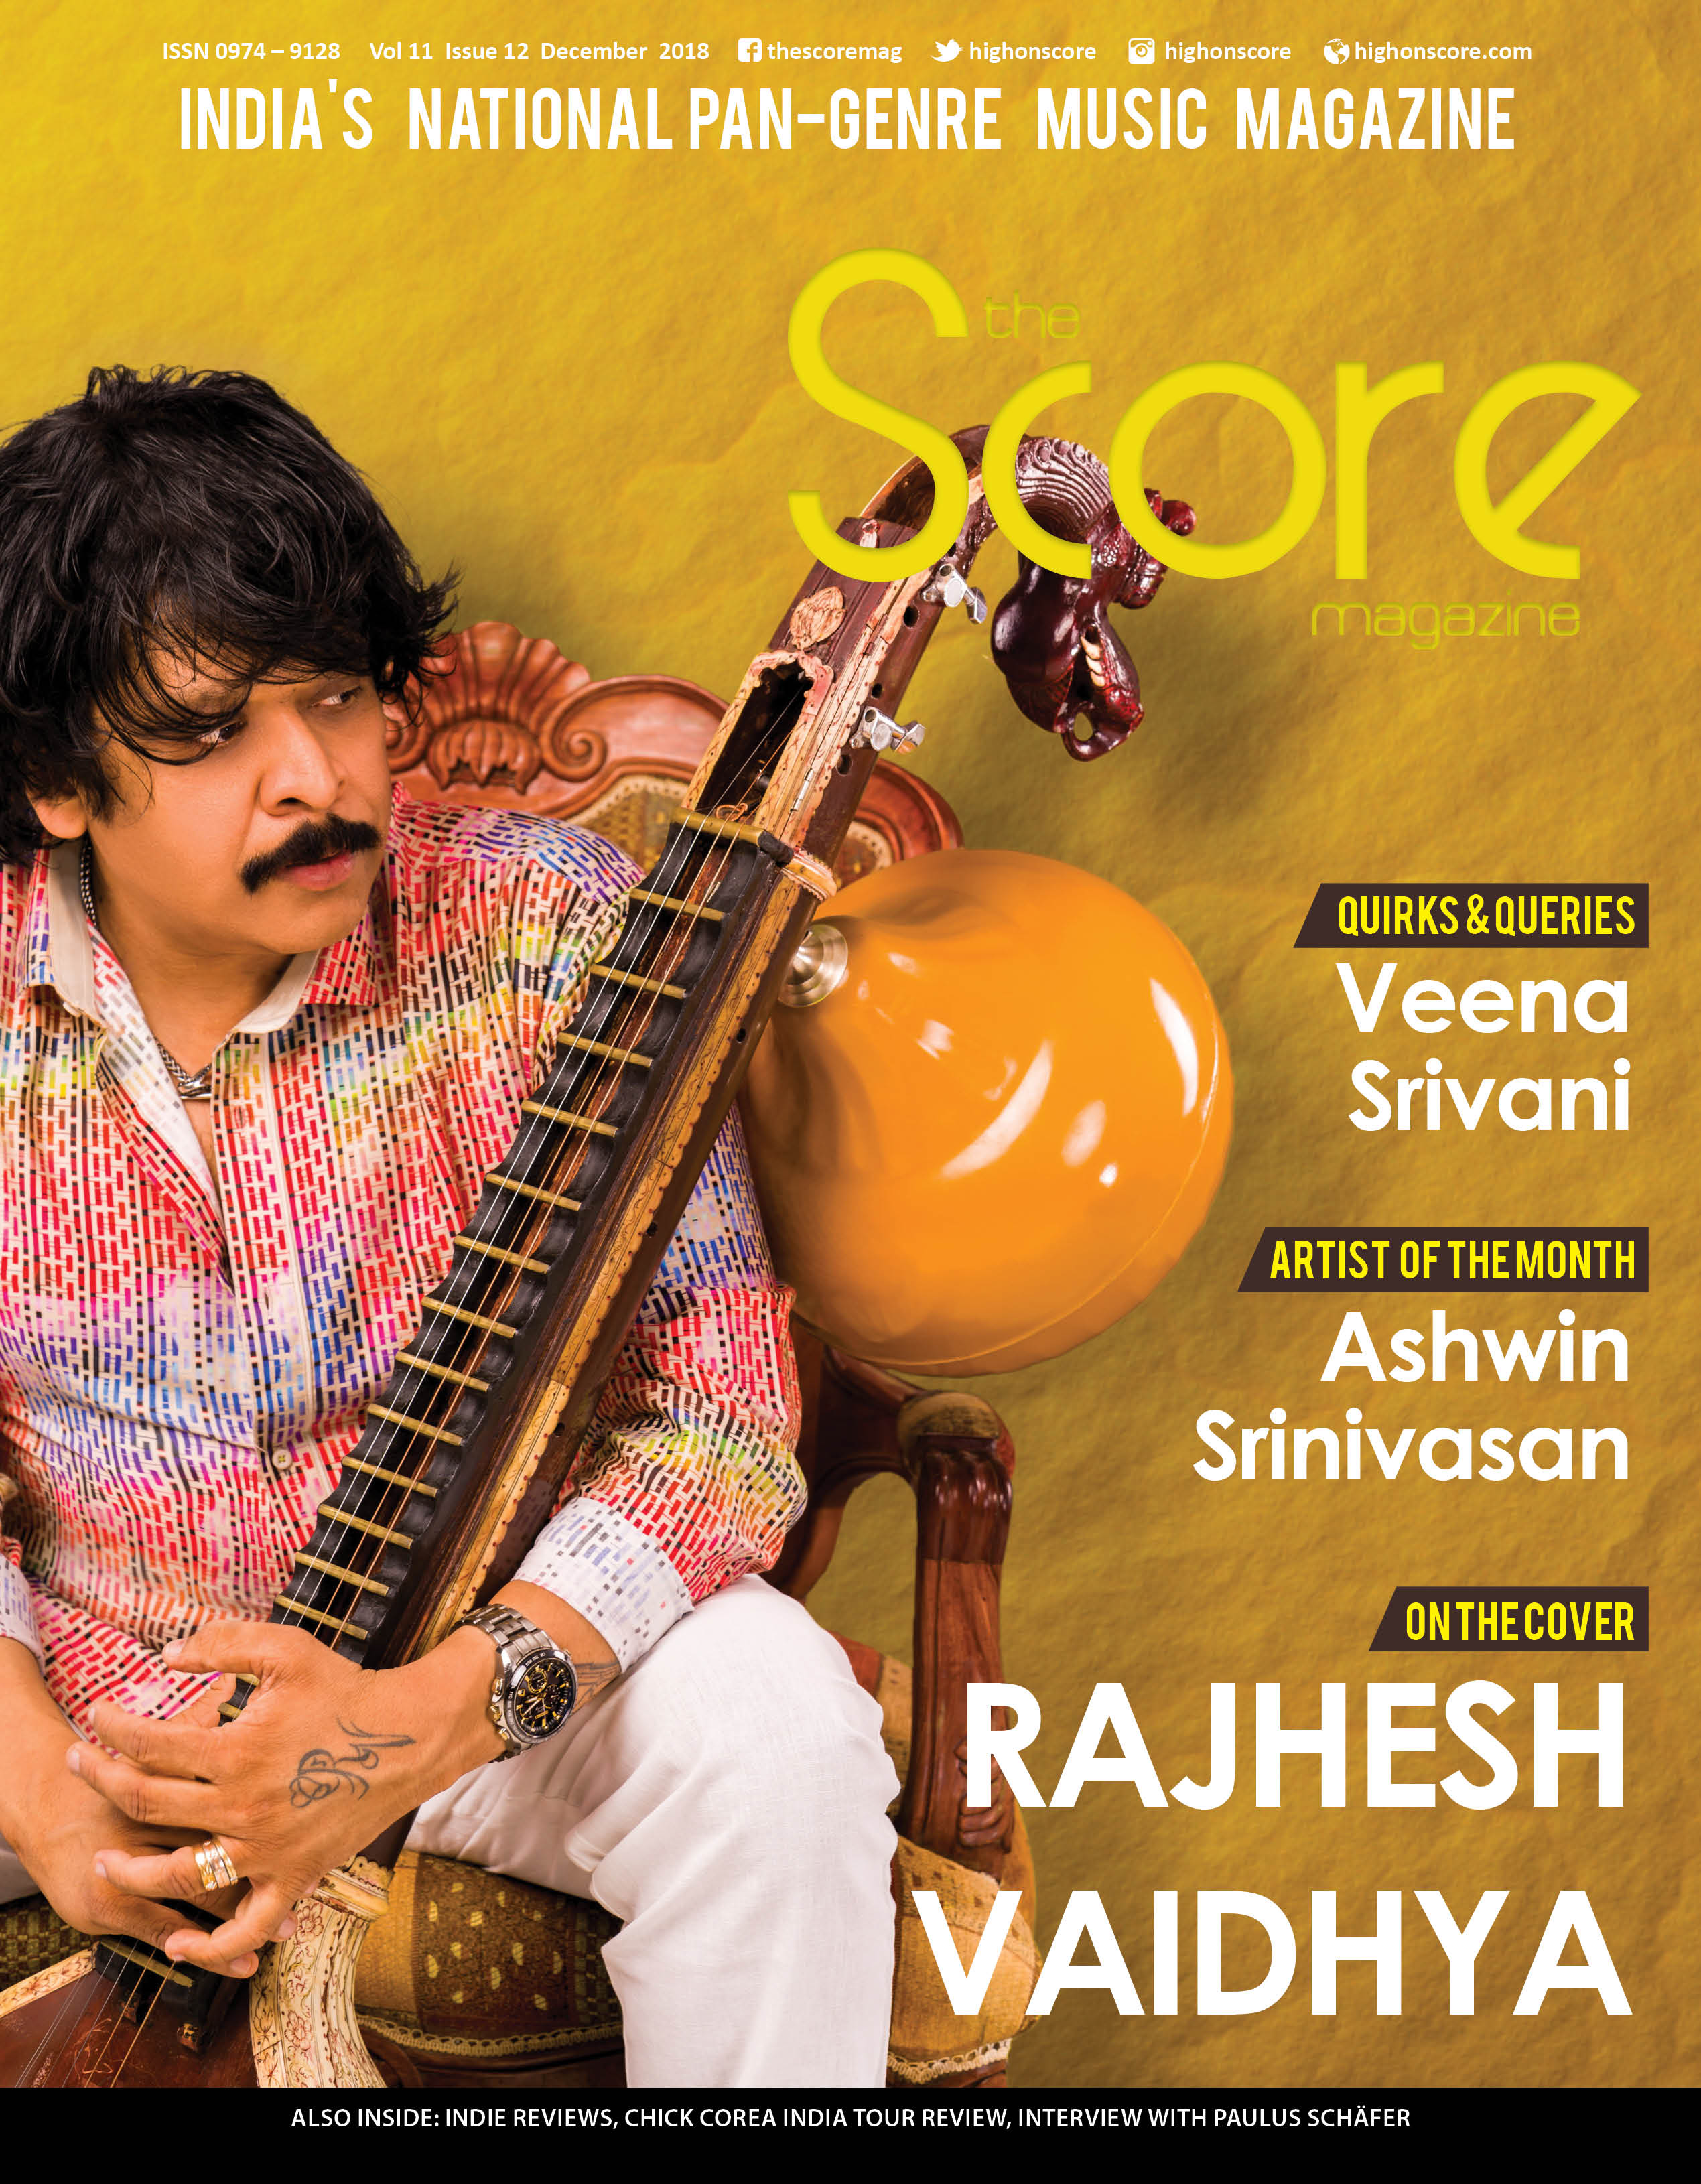 December 2018 issue featuring Rajhesh Vaidhya on the cover!